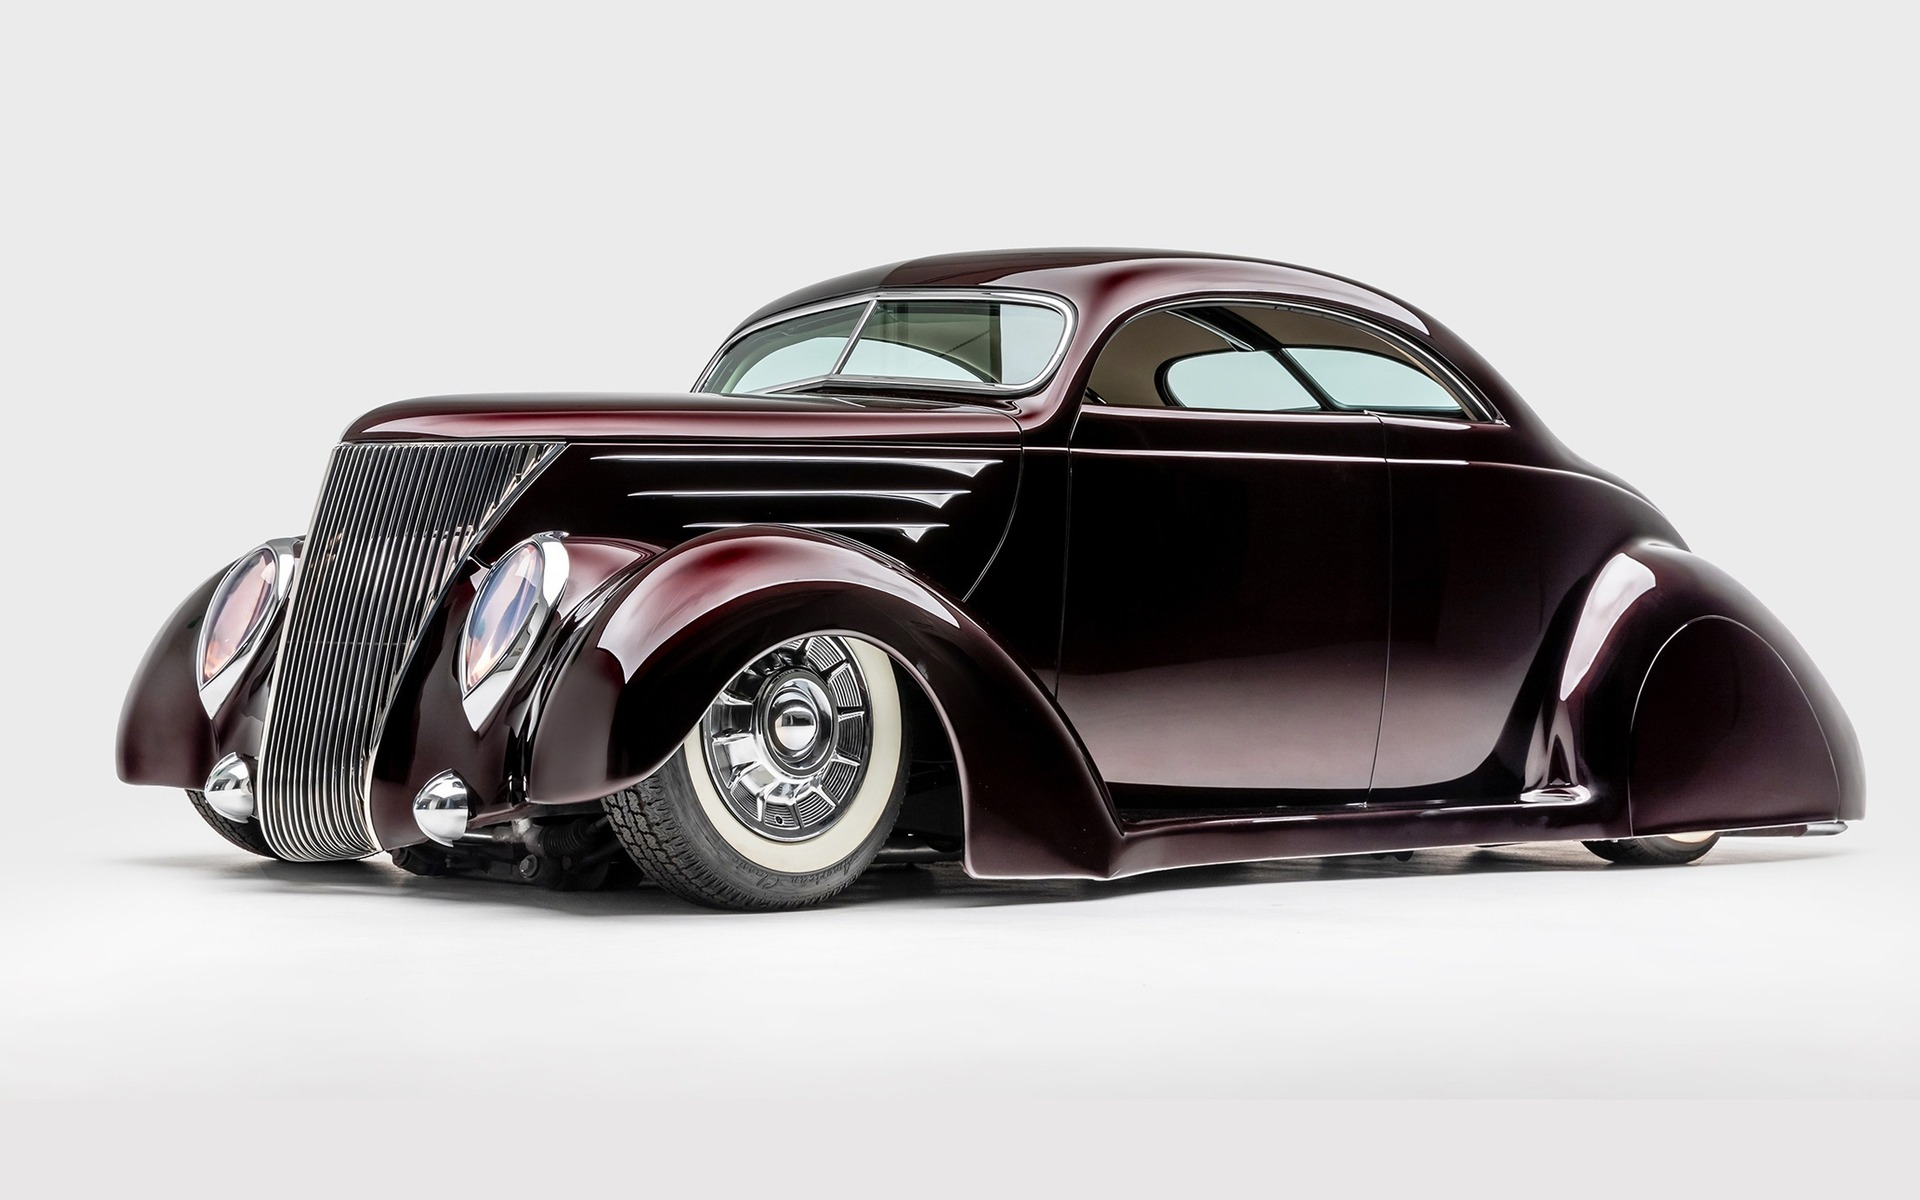 Metallica S James Hetfield And His Cars At The Petersen Automotive Museum 1 29